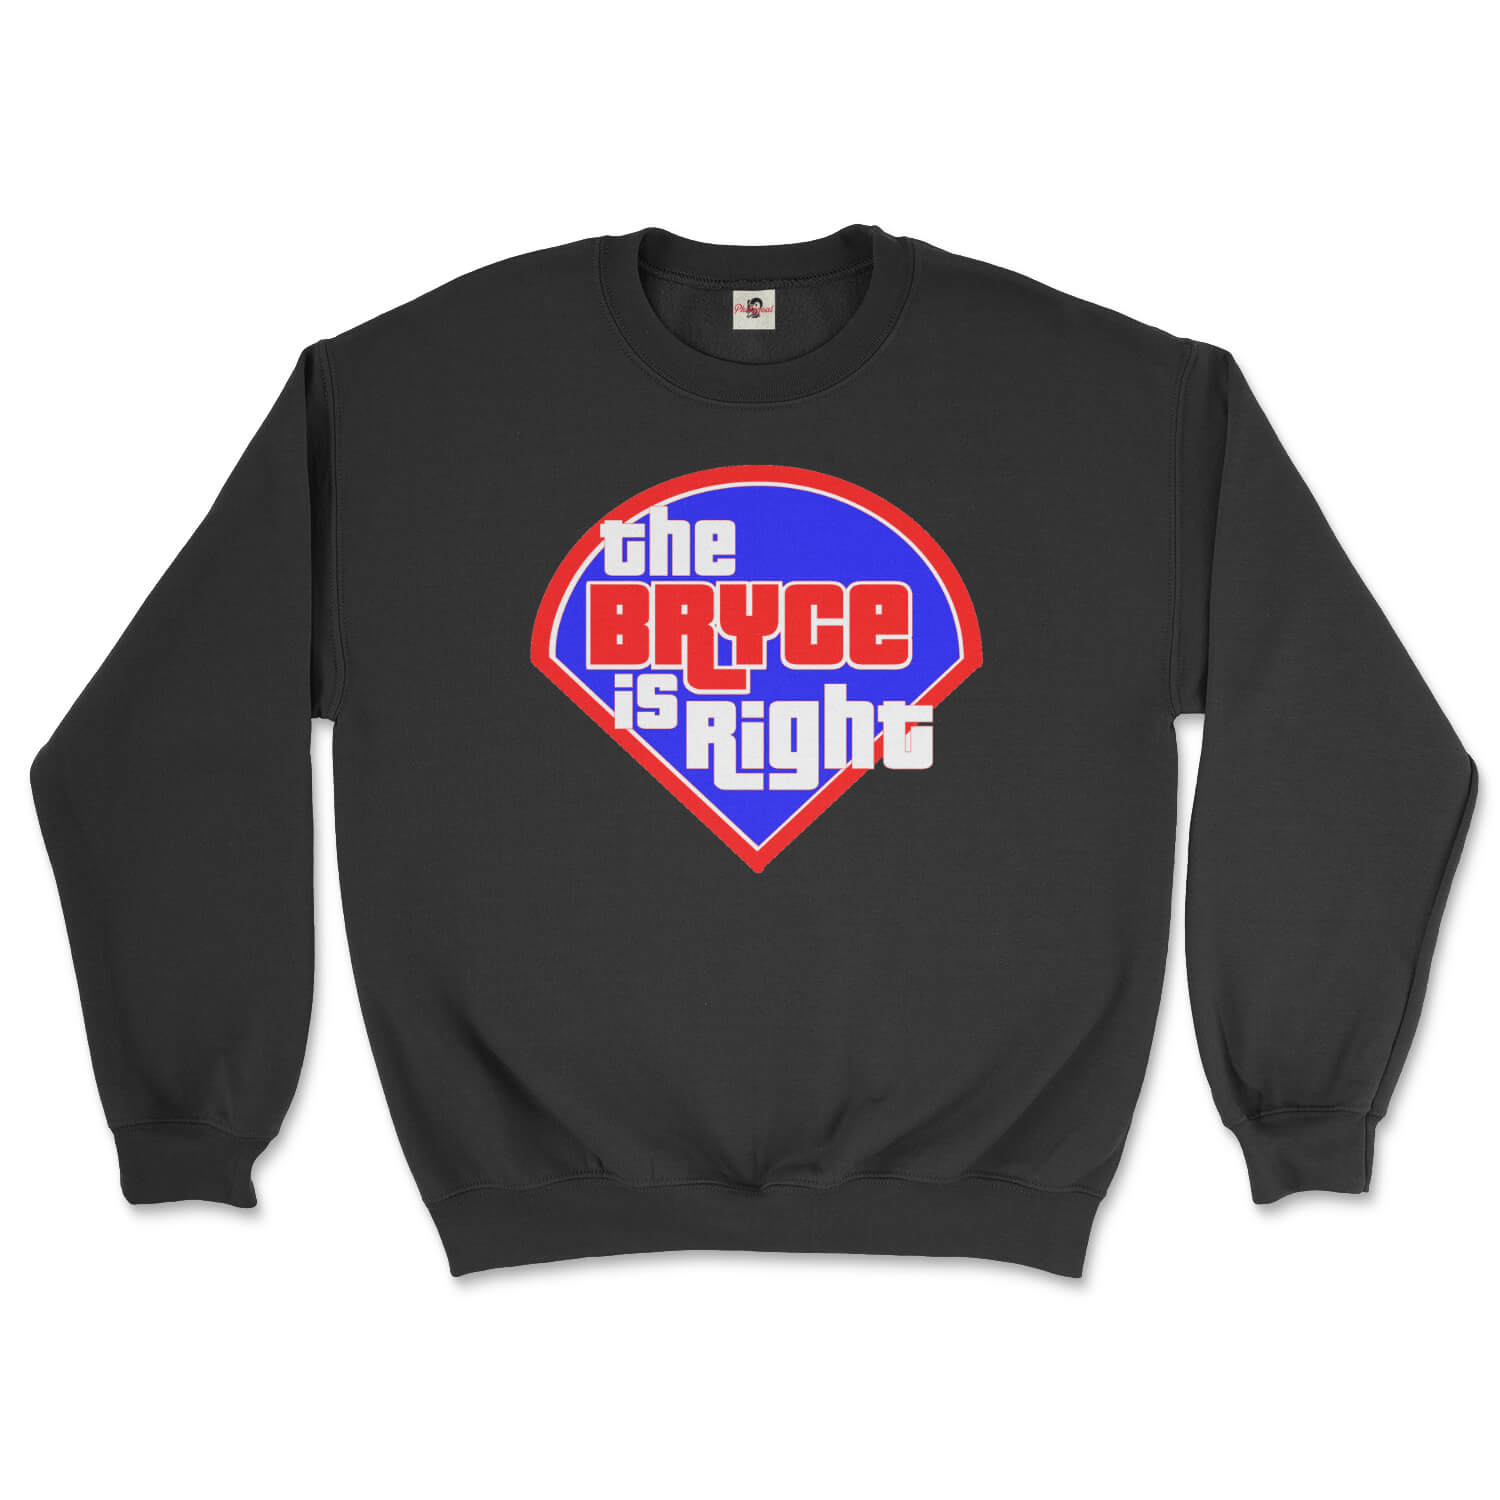 Philadelphia Phillies Bryce Harper the Bryce is Right design on a black sweatshirt from Phillygoat